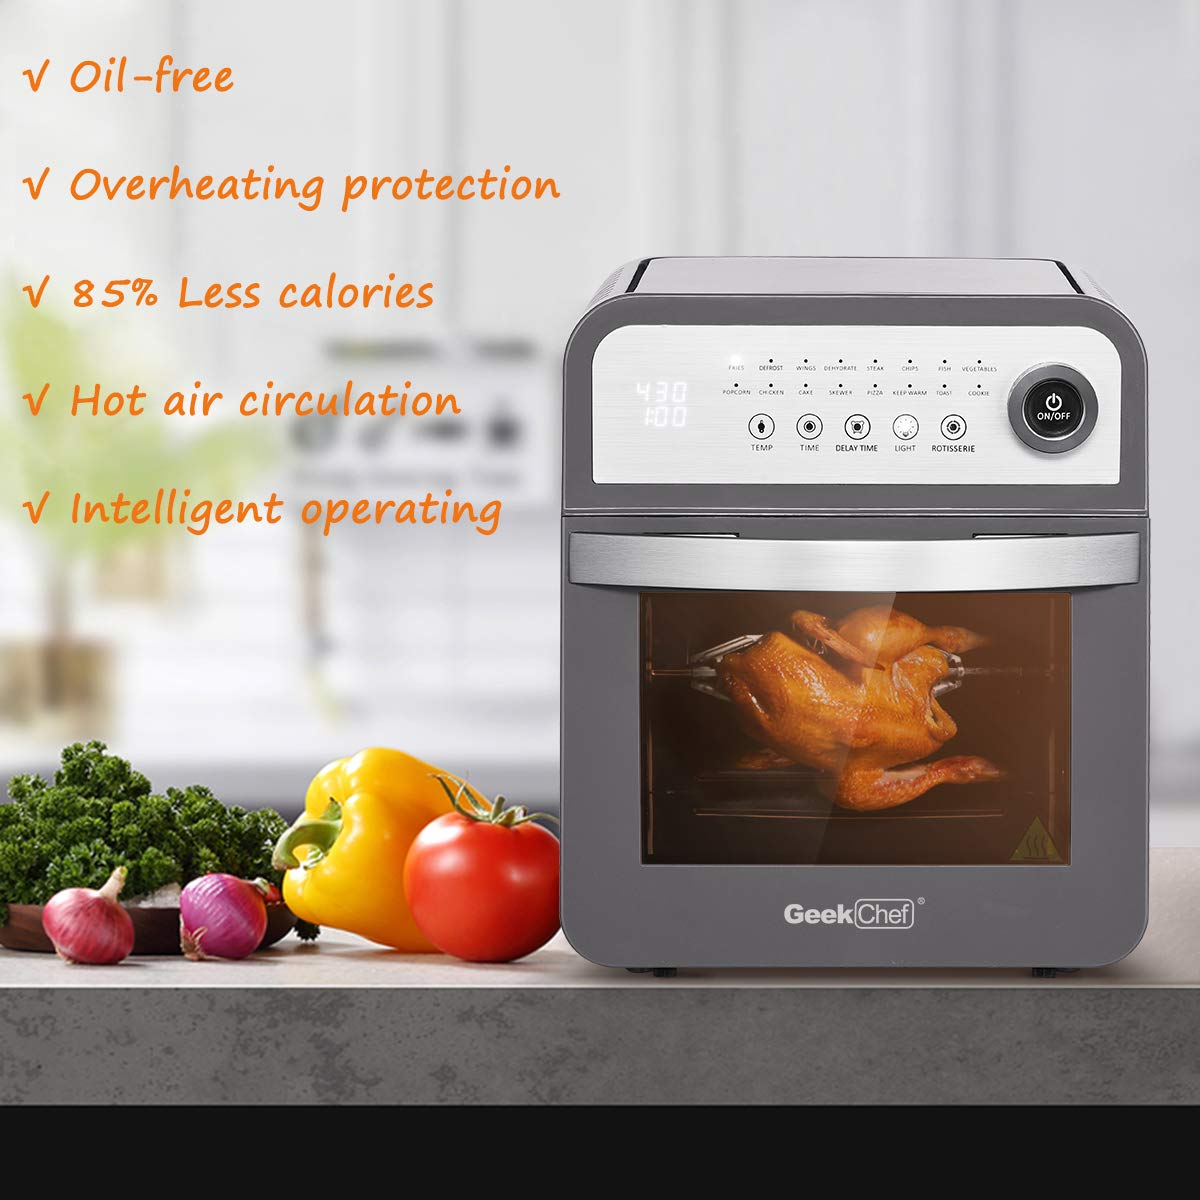 Geek Chef Air Fryer Oven 12 Quart Large Capacity with Rotisserie and Dehydrator All in One Multi-Function Healthy Fryer with 16 preset Modes, 8 Cooking Accessories Kits and Cooking Recipe Gray